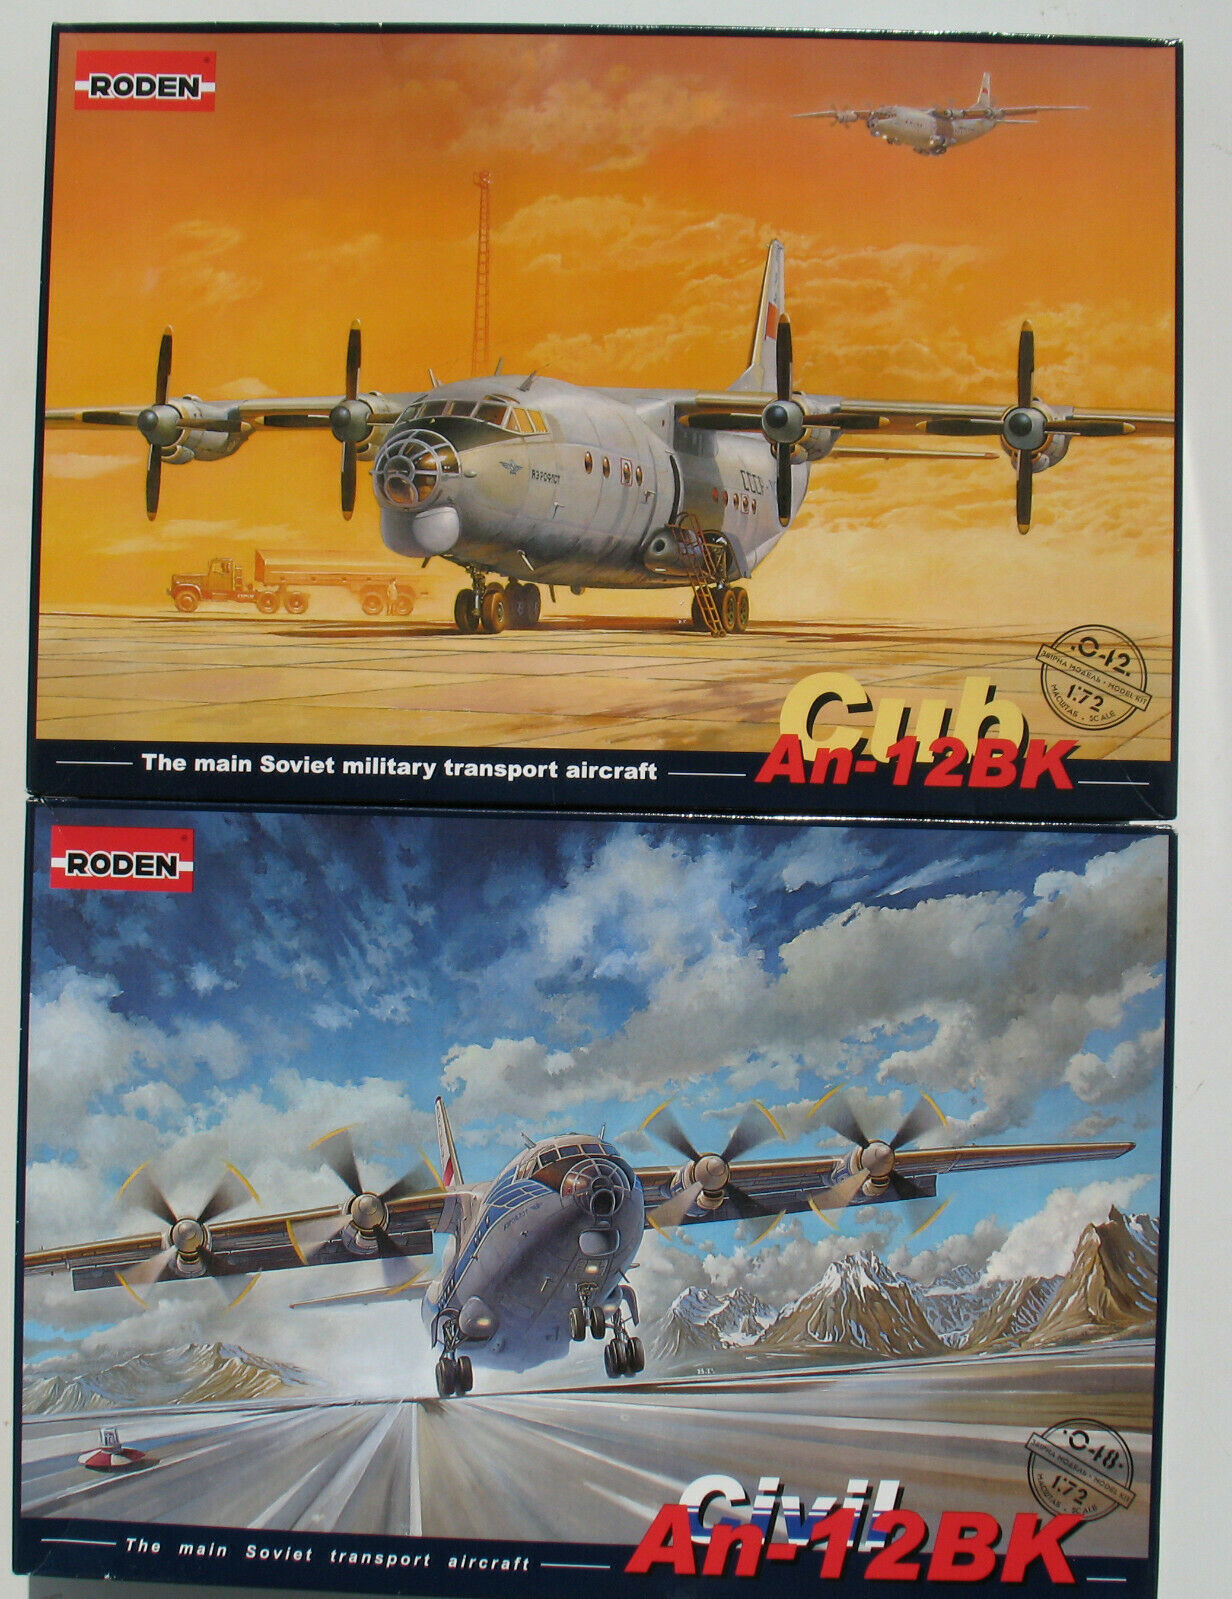 RODEN 042 + 048 - Antonov An-12BK Cub + Civil Transport - 1 72 Bausatz Model Kit